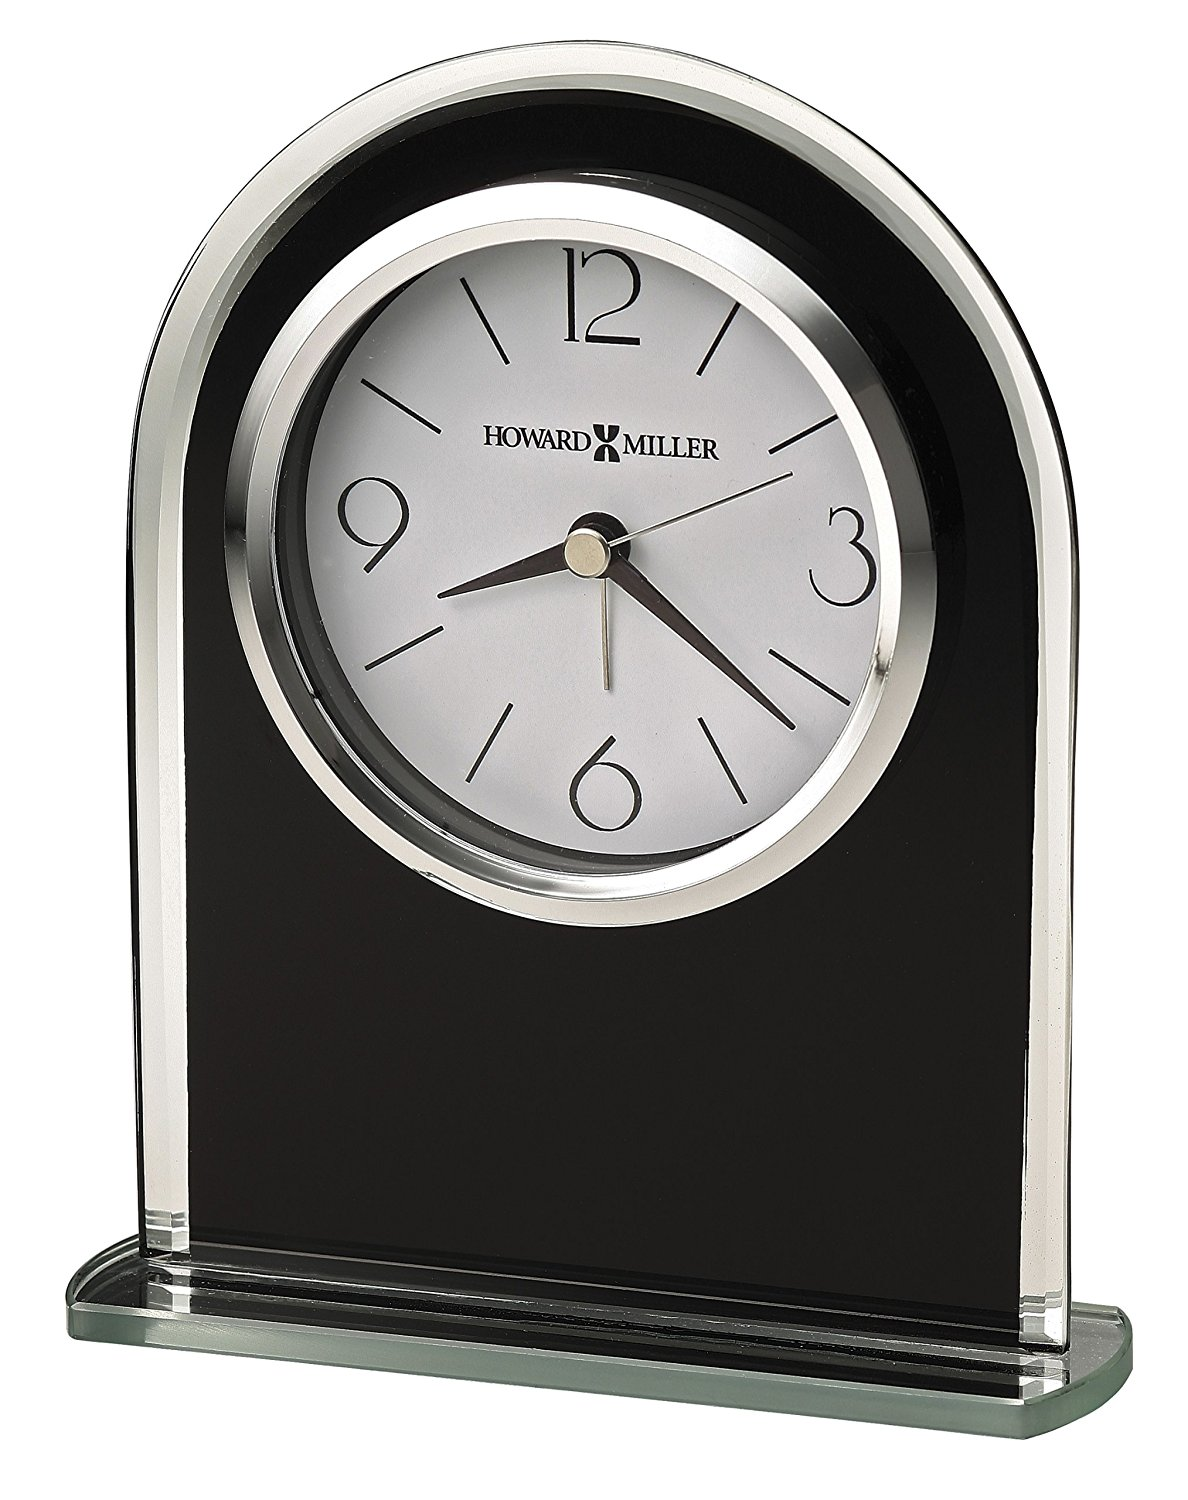 645-702 Ebony Luster Table Clock by, By Howard Miller From USA by